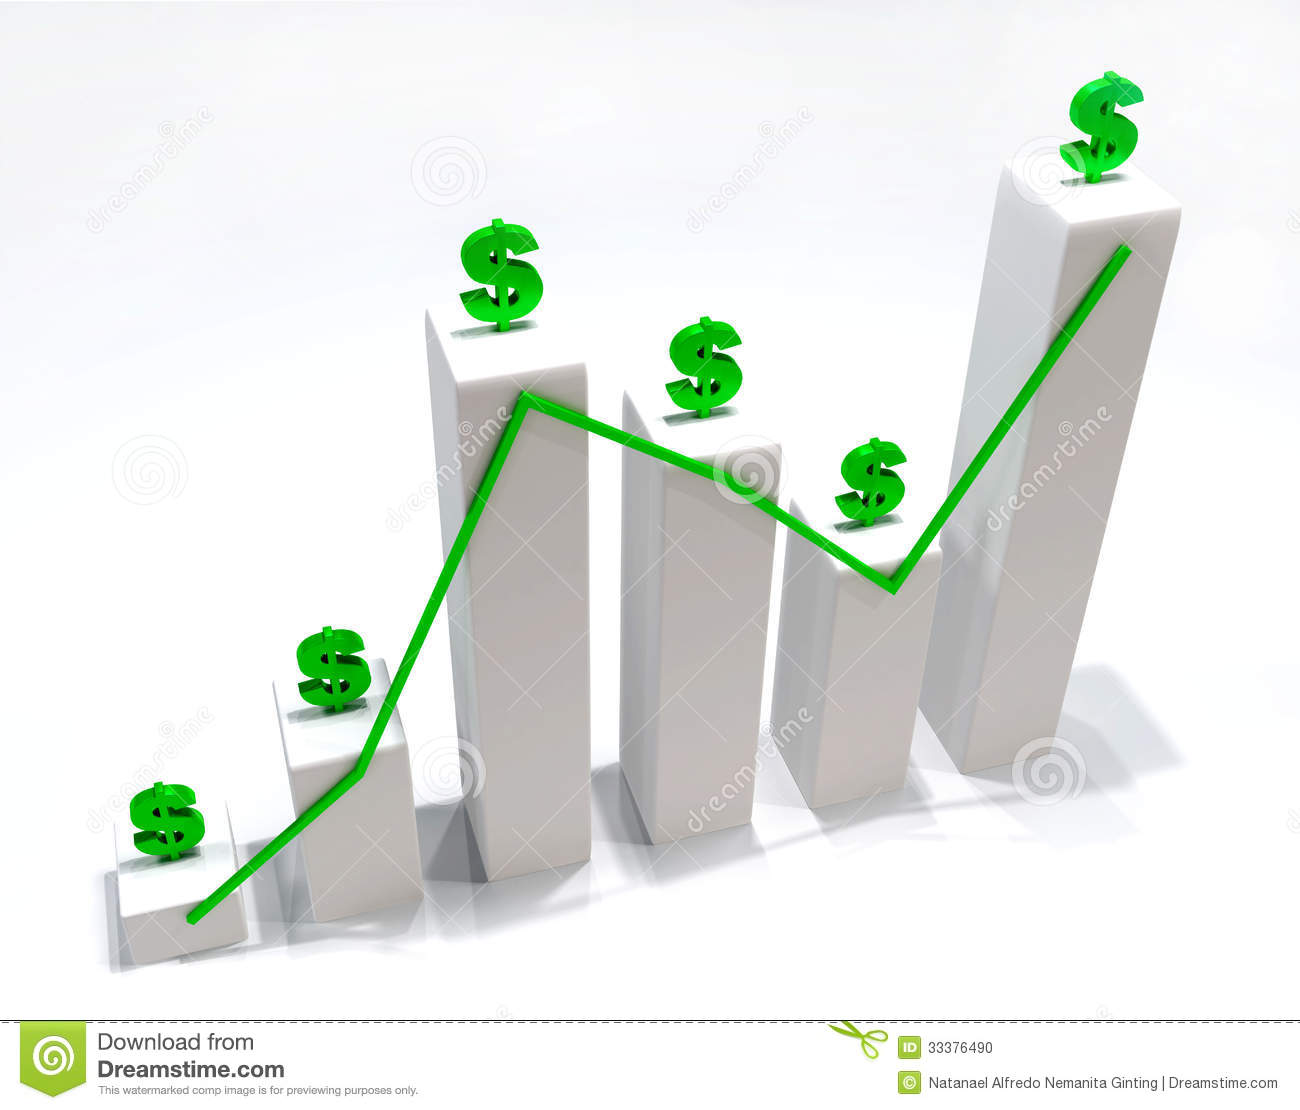 Money Graphic 3d Stock Photo Image Of Cashflow, Currency. Small Business Voip Phone Service Reviews. Voip Service Providers Comparison. Cheap Internet In Sacramento. How To Receive Fax Online Business Cards Idea. Whitening Teeth After Braces. Type Of Substance Abuse Local Psychic Mediums. Zillow Loan Calculator Security Systems In Ct. Best Monitor Calibration Software